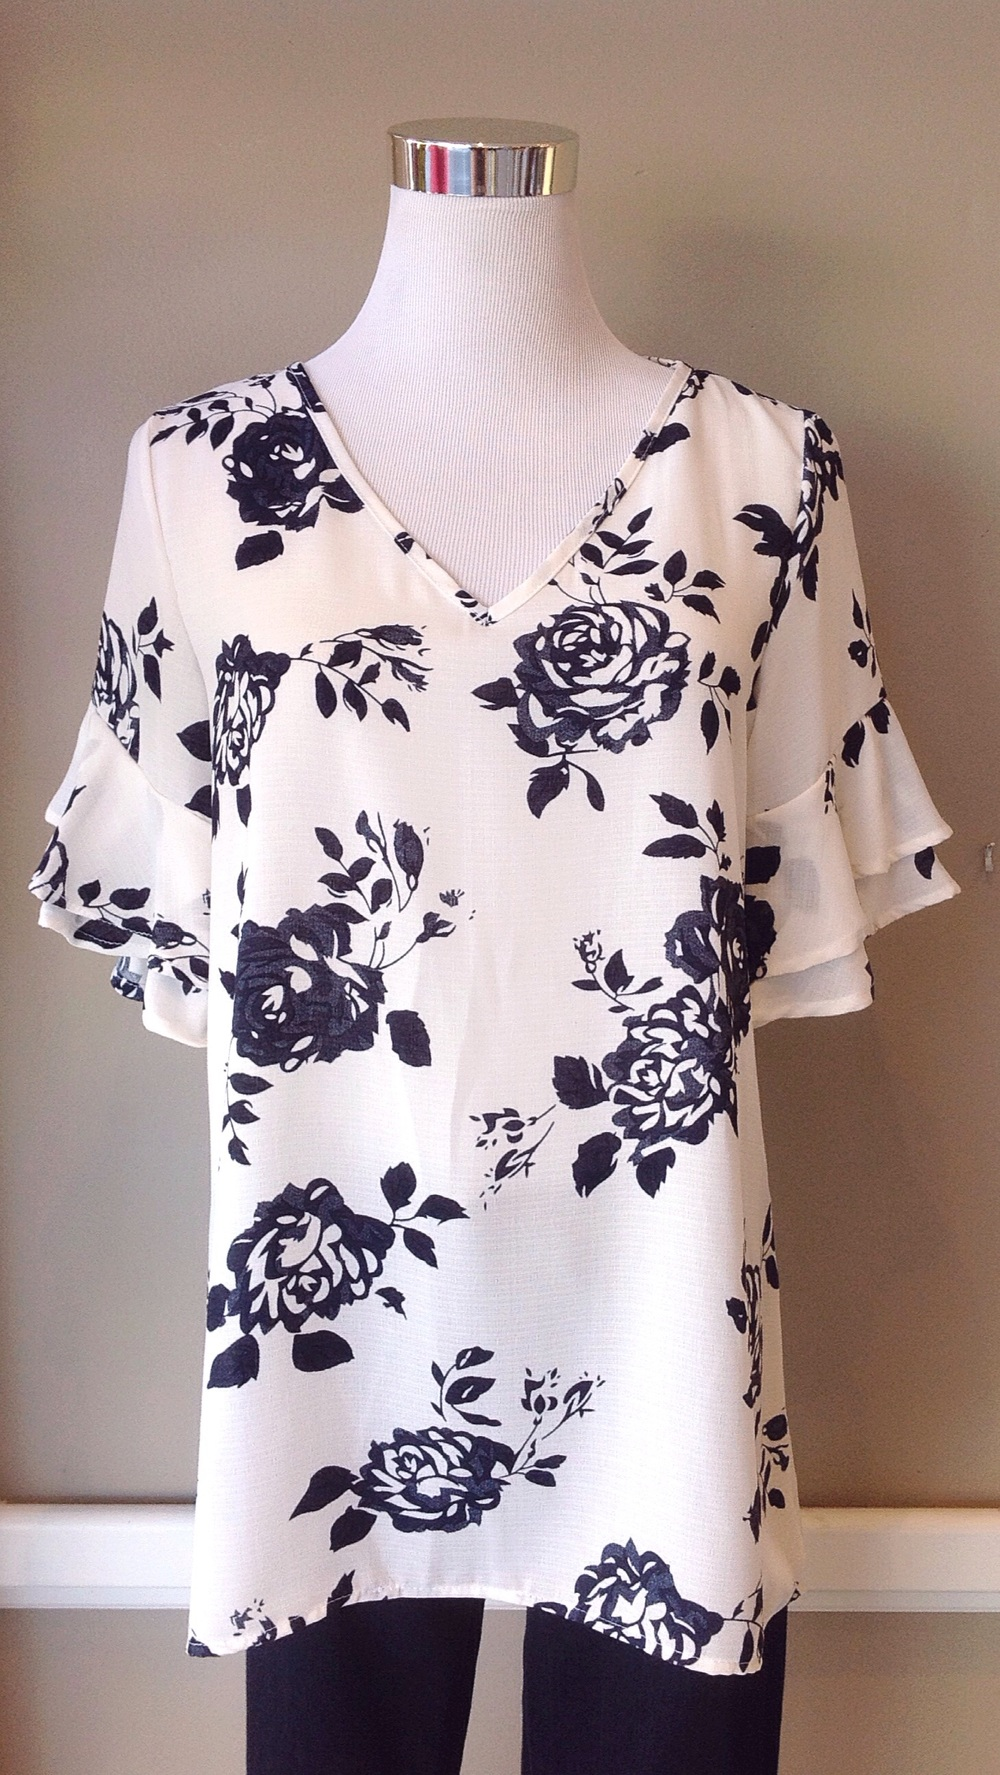 Woven floral print blouse with ruffled short sleeves in ivory/dark navy, $34